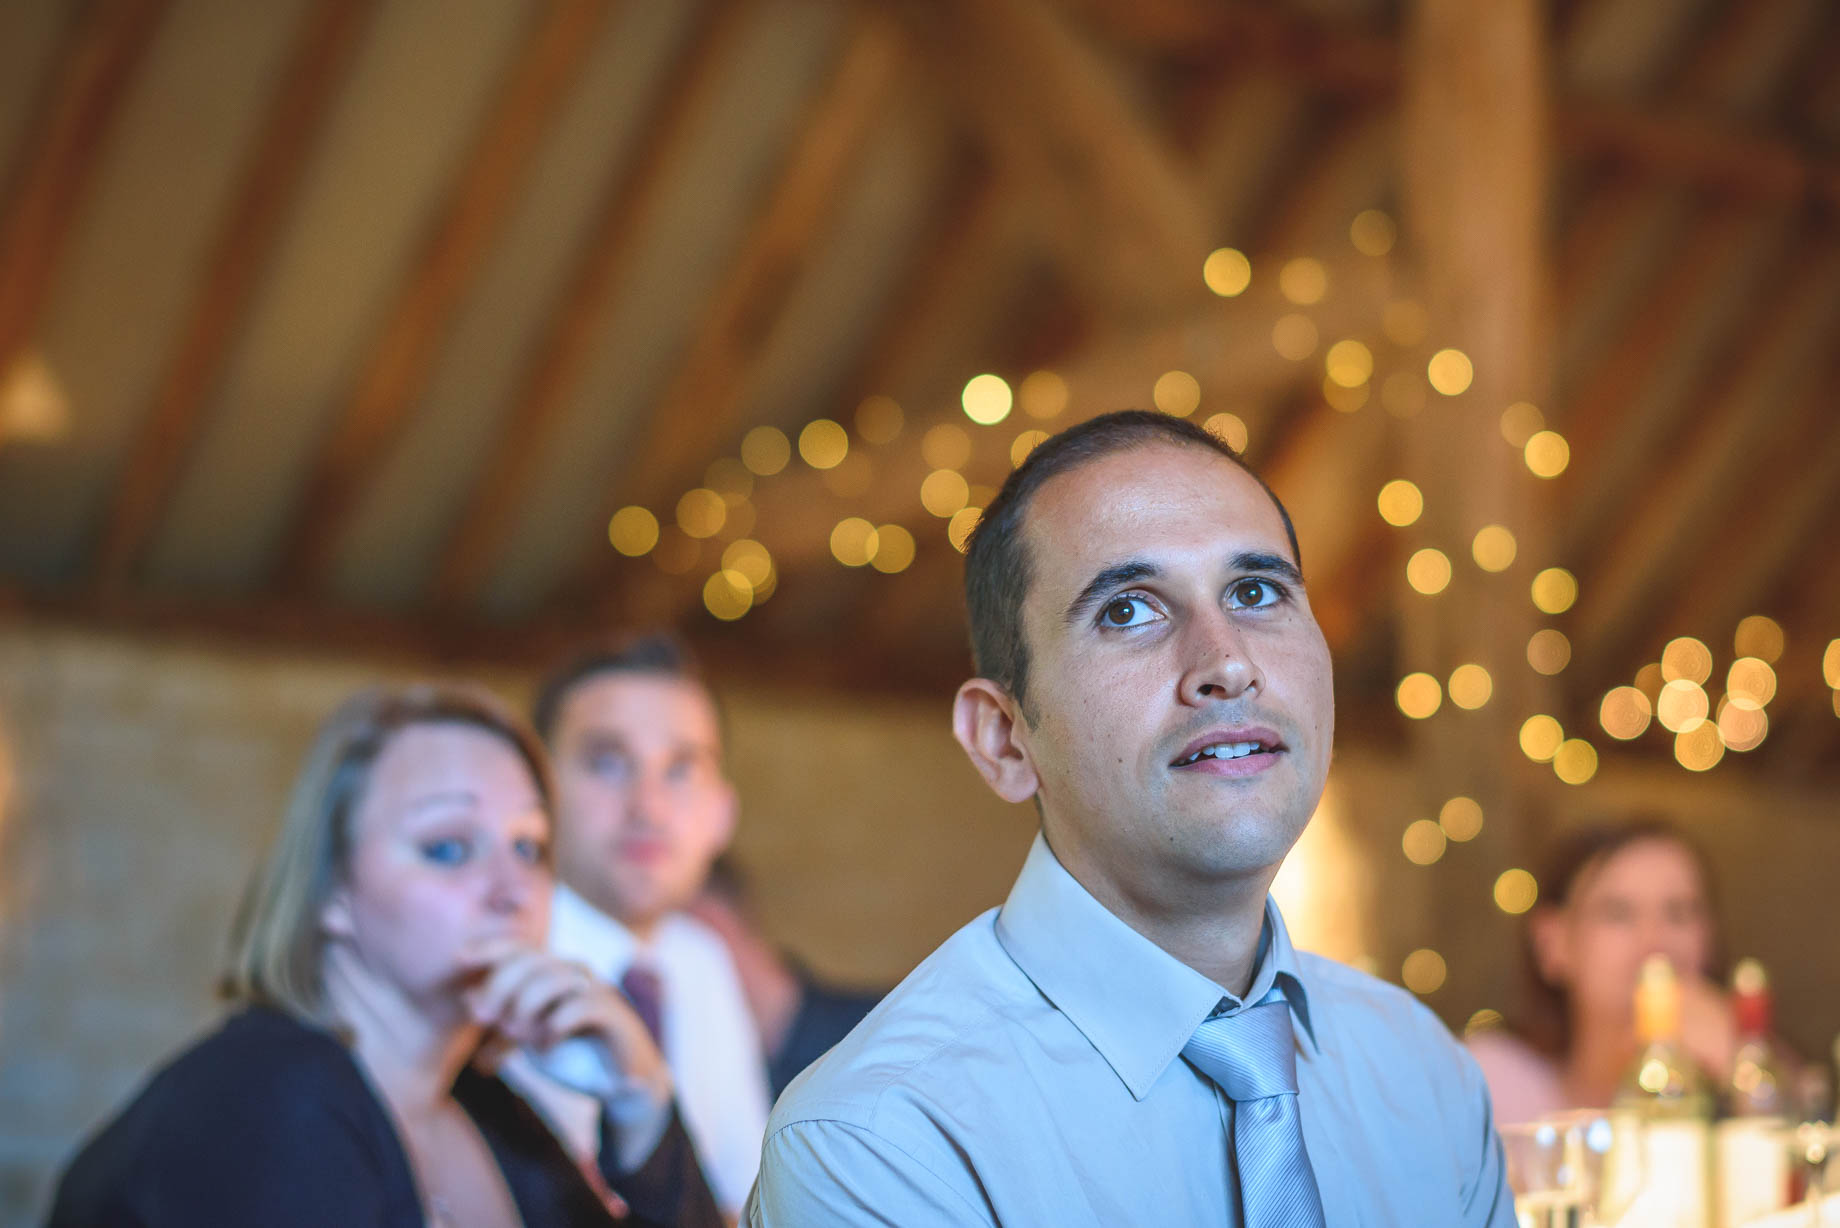 Bury Court Barn wedding photography - Guy Collier - Kirsty and Lewis (118 of 150)